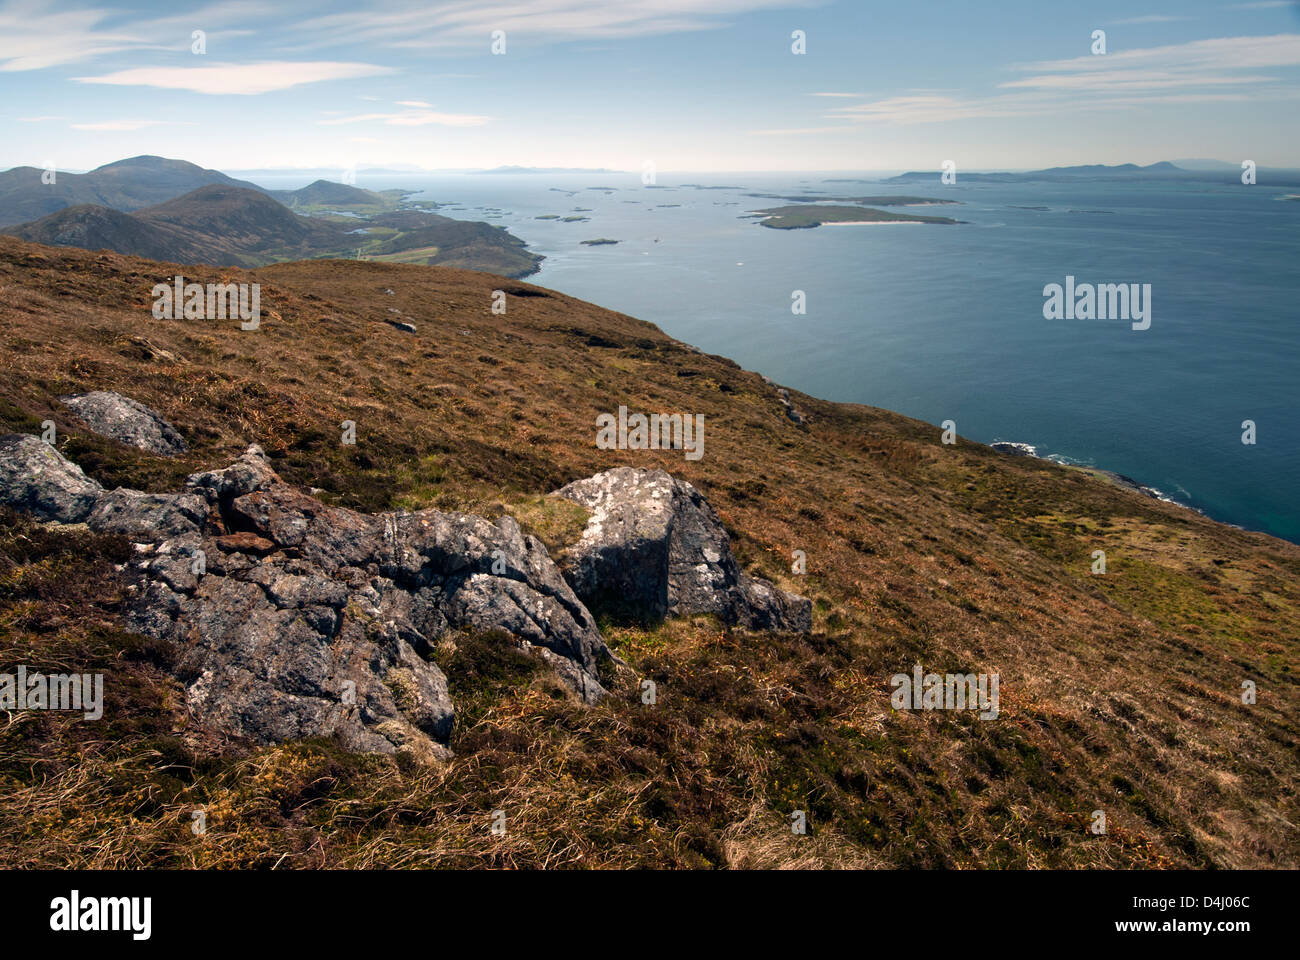 Isle of Harris from Toe Head. Isle of Lewis, Outer Hebrides, Scotland. Looking East. - Stock Image